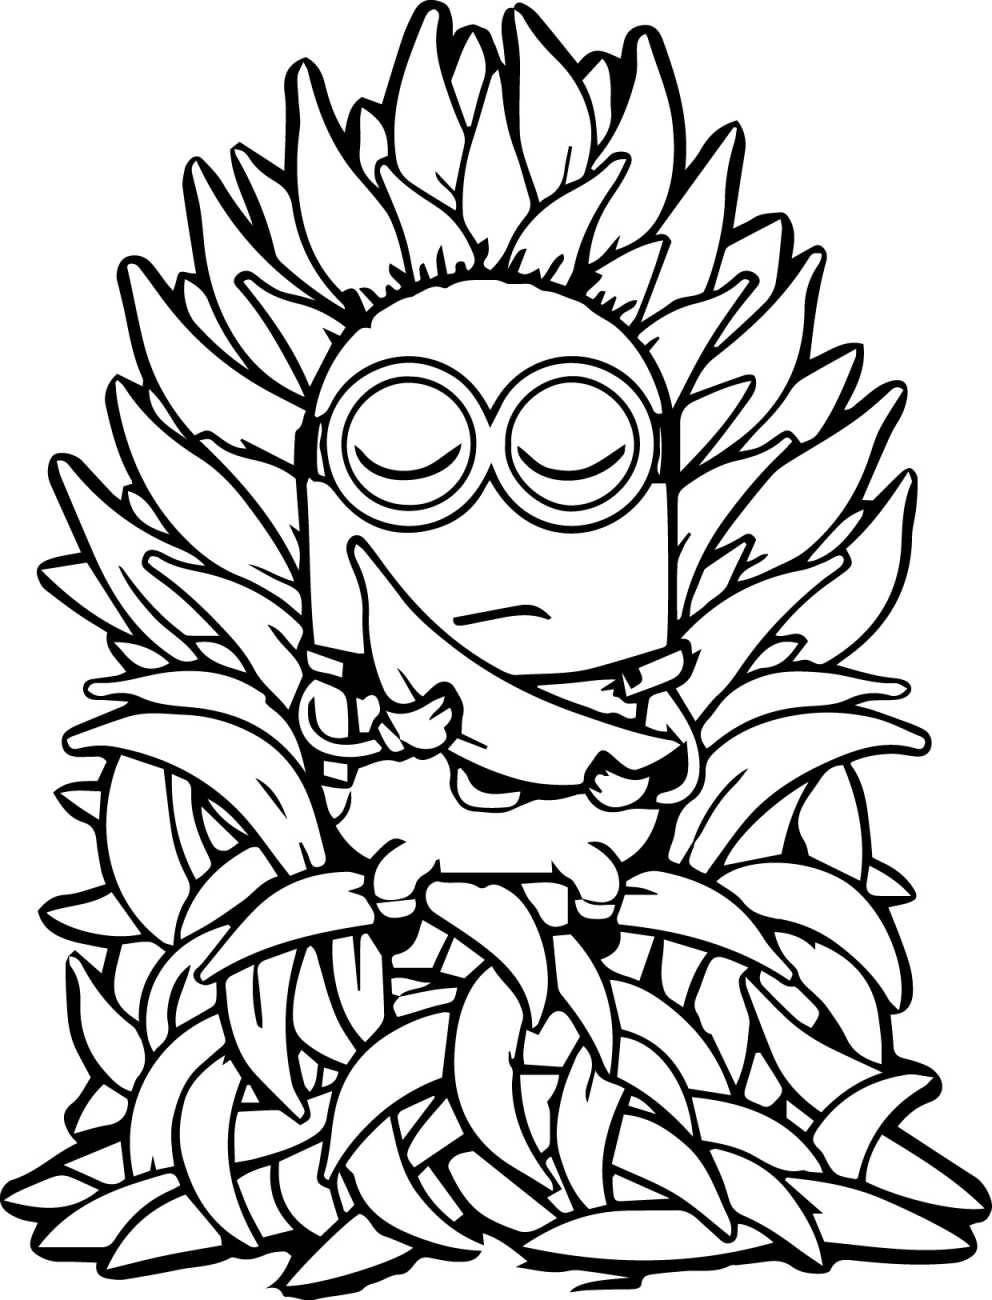 Free Minion Coloring Pages Dÿz The Minion The Banana Throne Kizi Free 2020 In 2020 Minion Coloring Pages Fall Coloring Pages Flag Coloring Pages